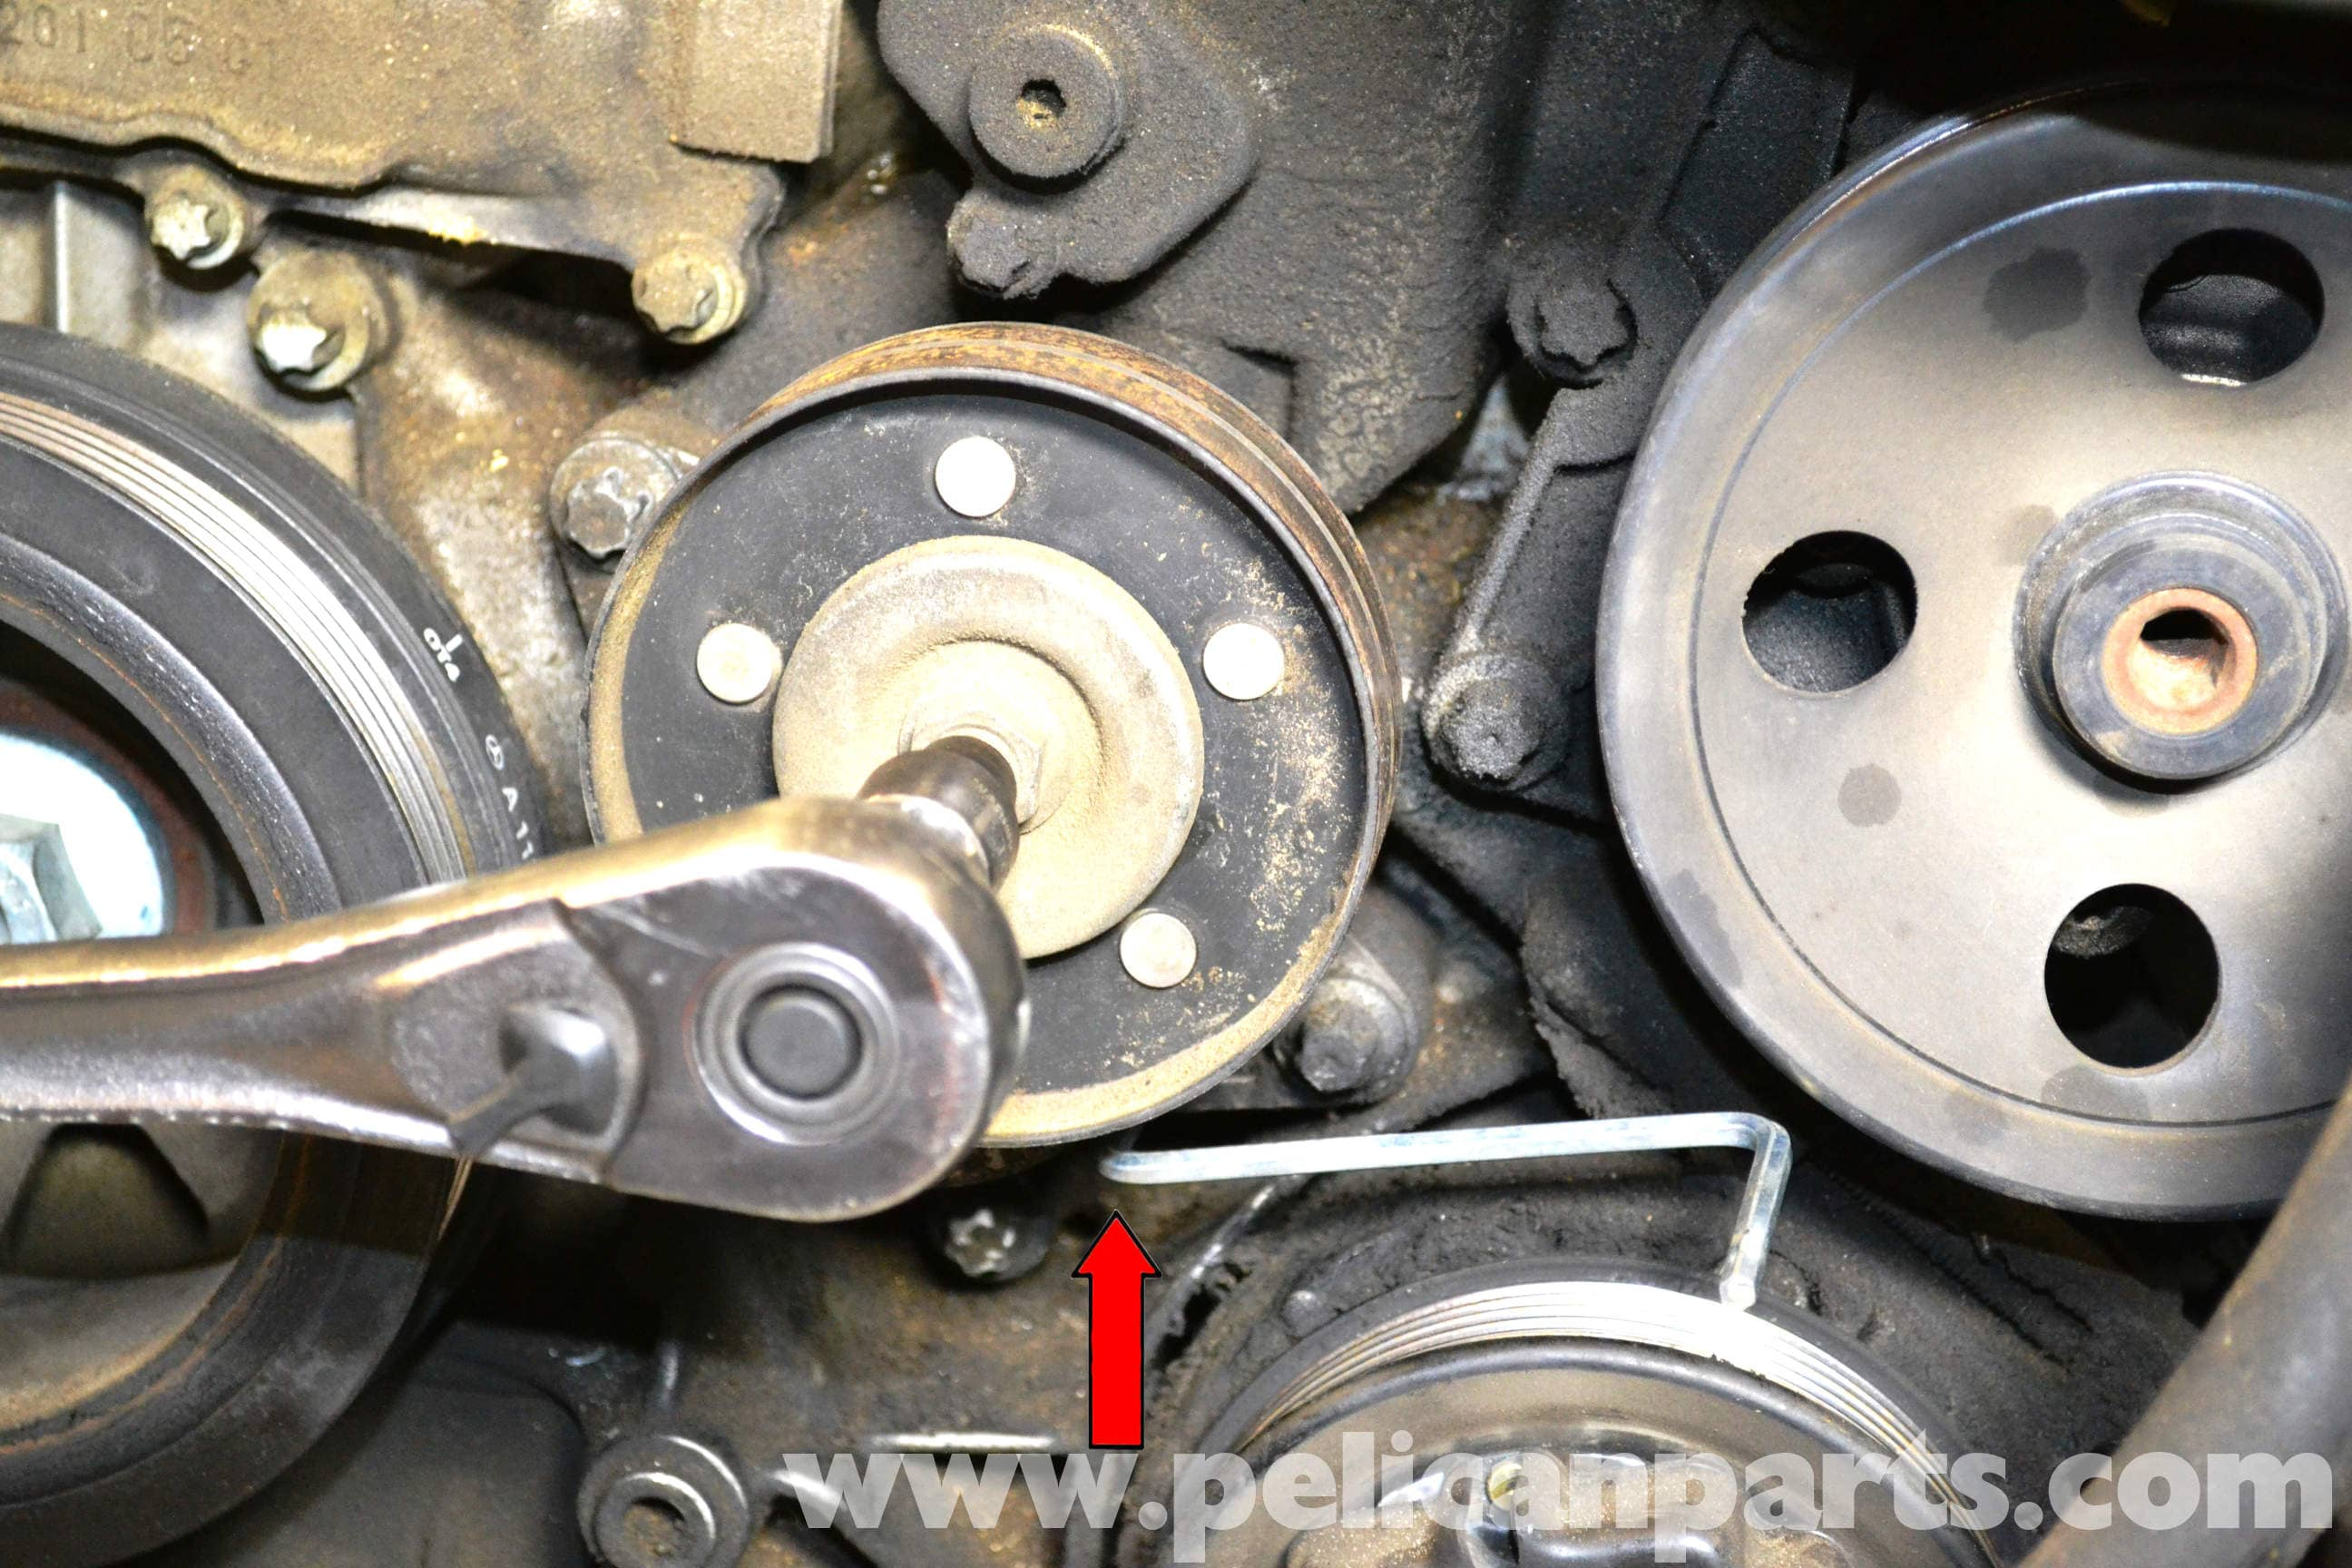 Mercedes-Benz W203 Timing Chain Tensioner Replacement - (2001-2007